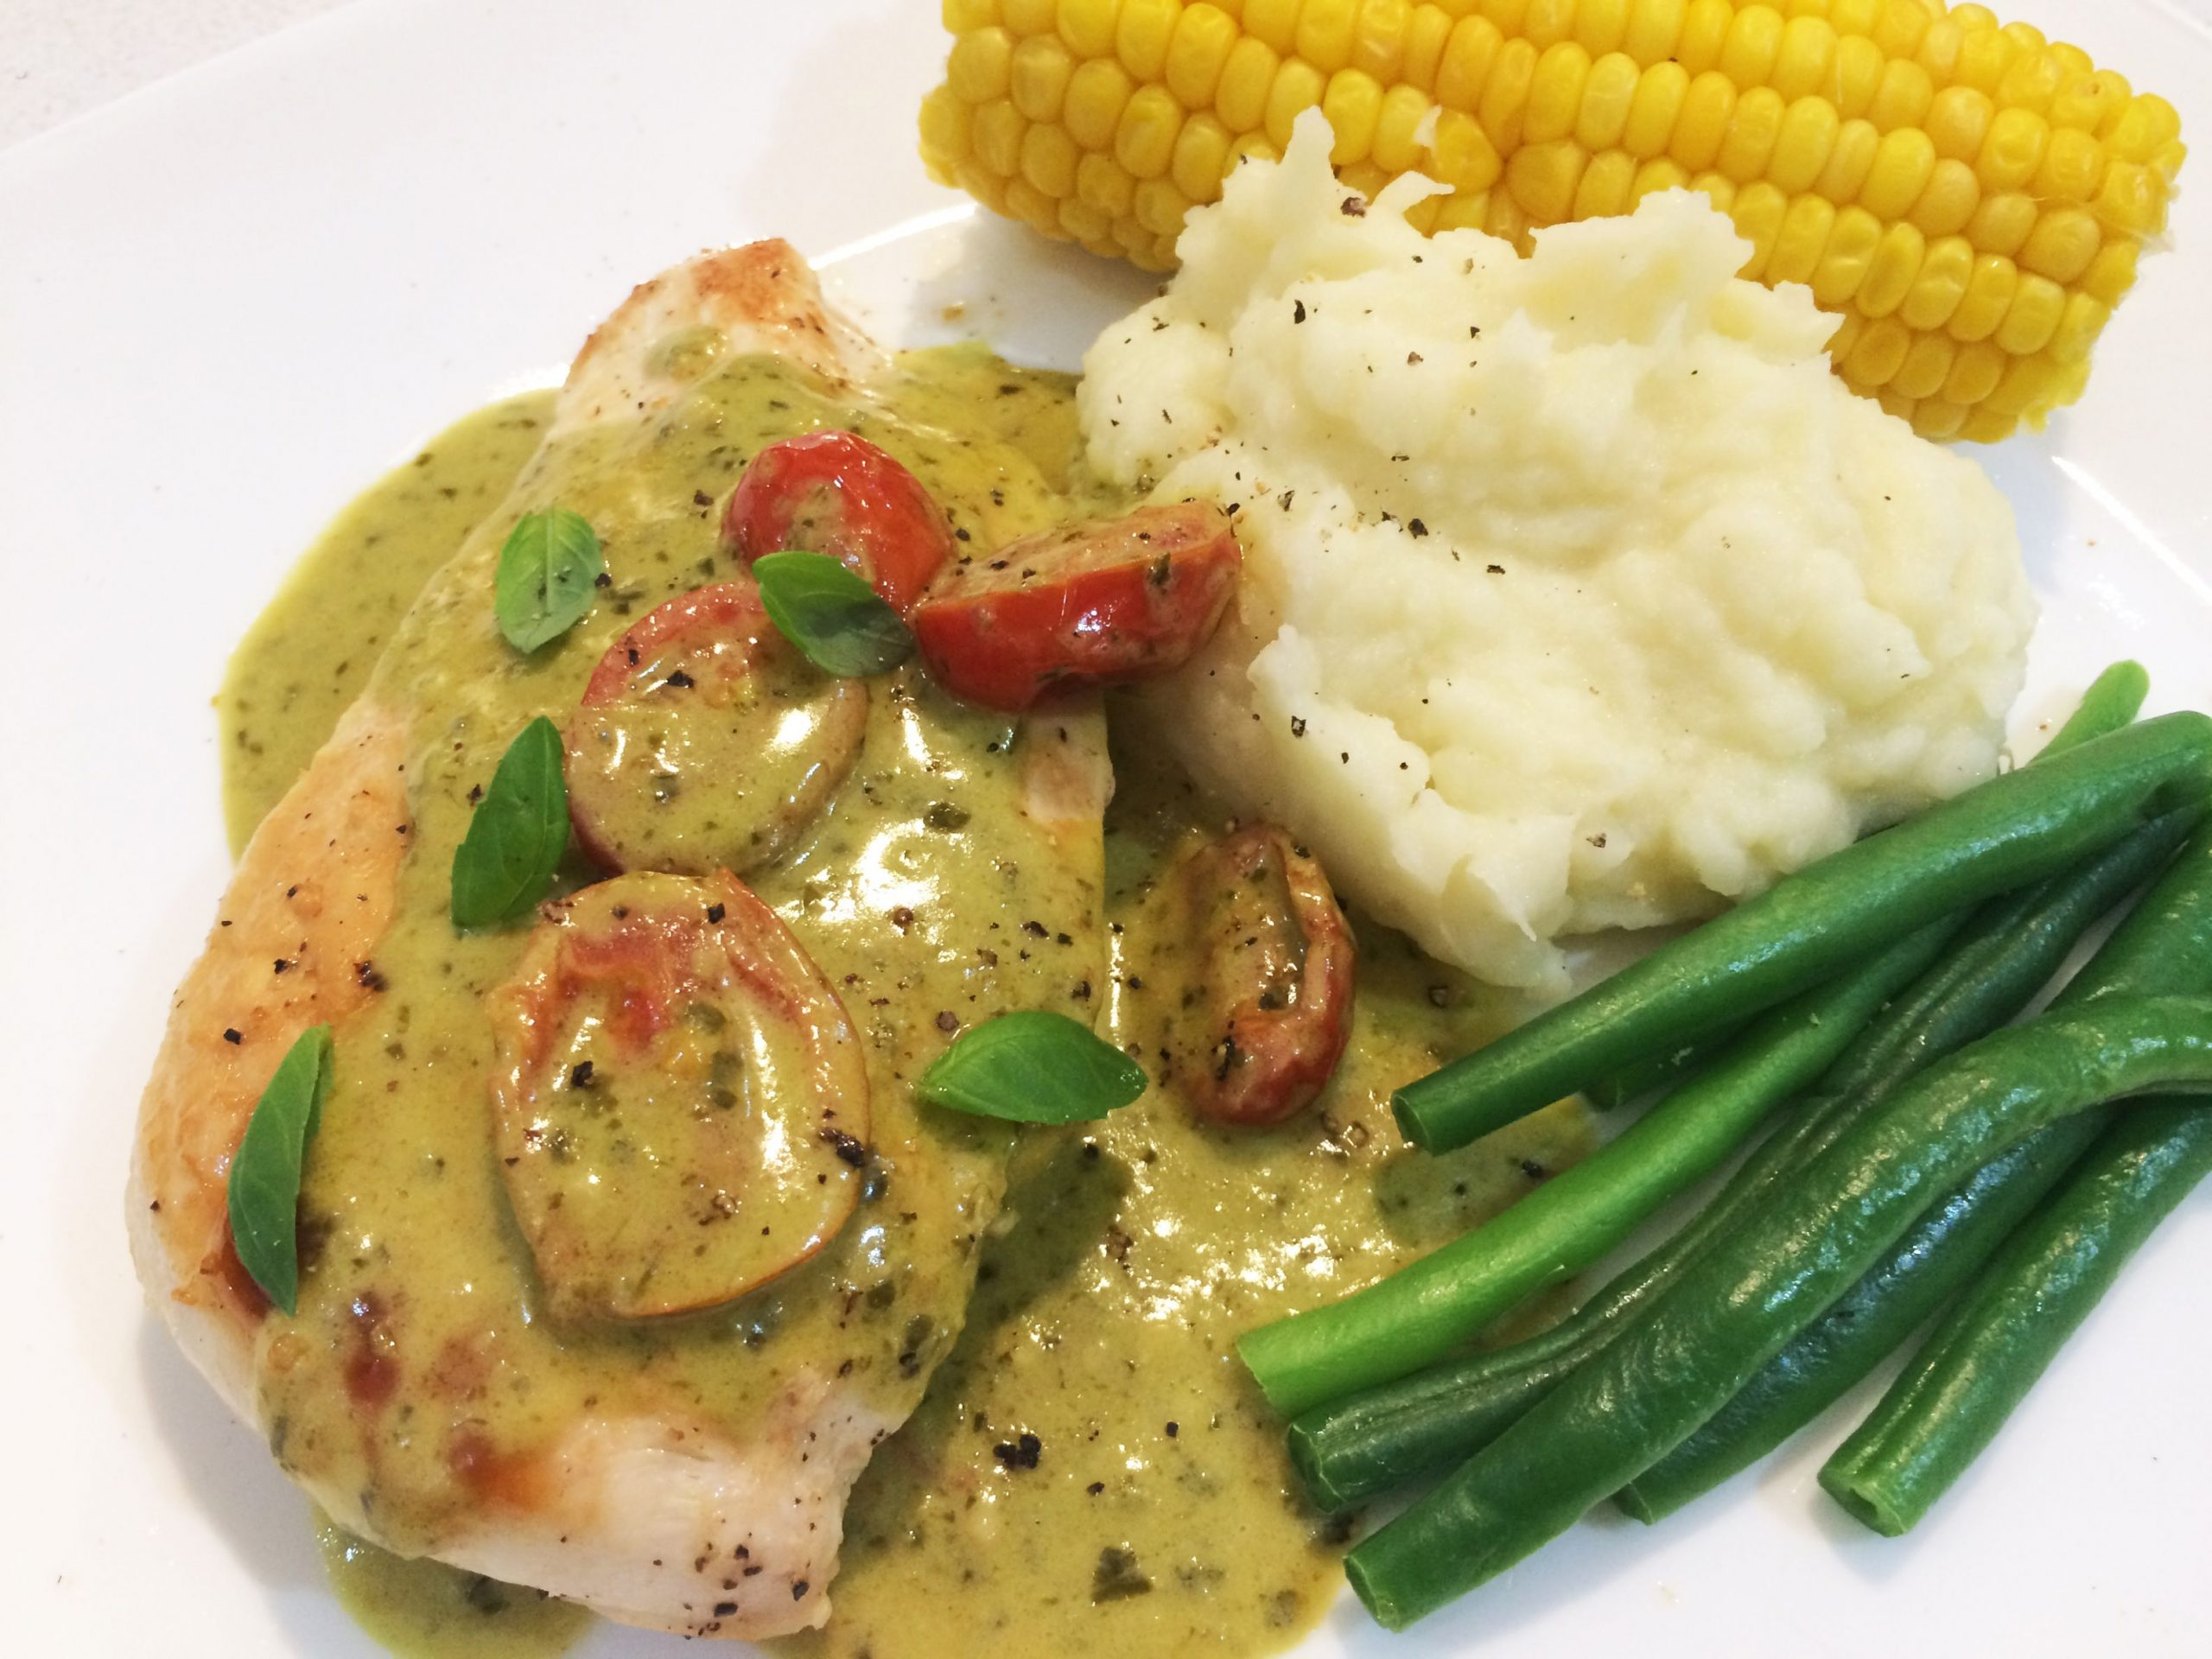 Grilled Chicken with Pesto Cream Sauce